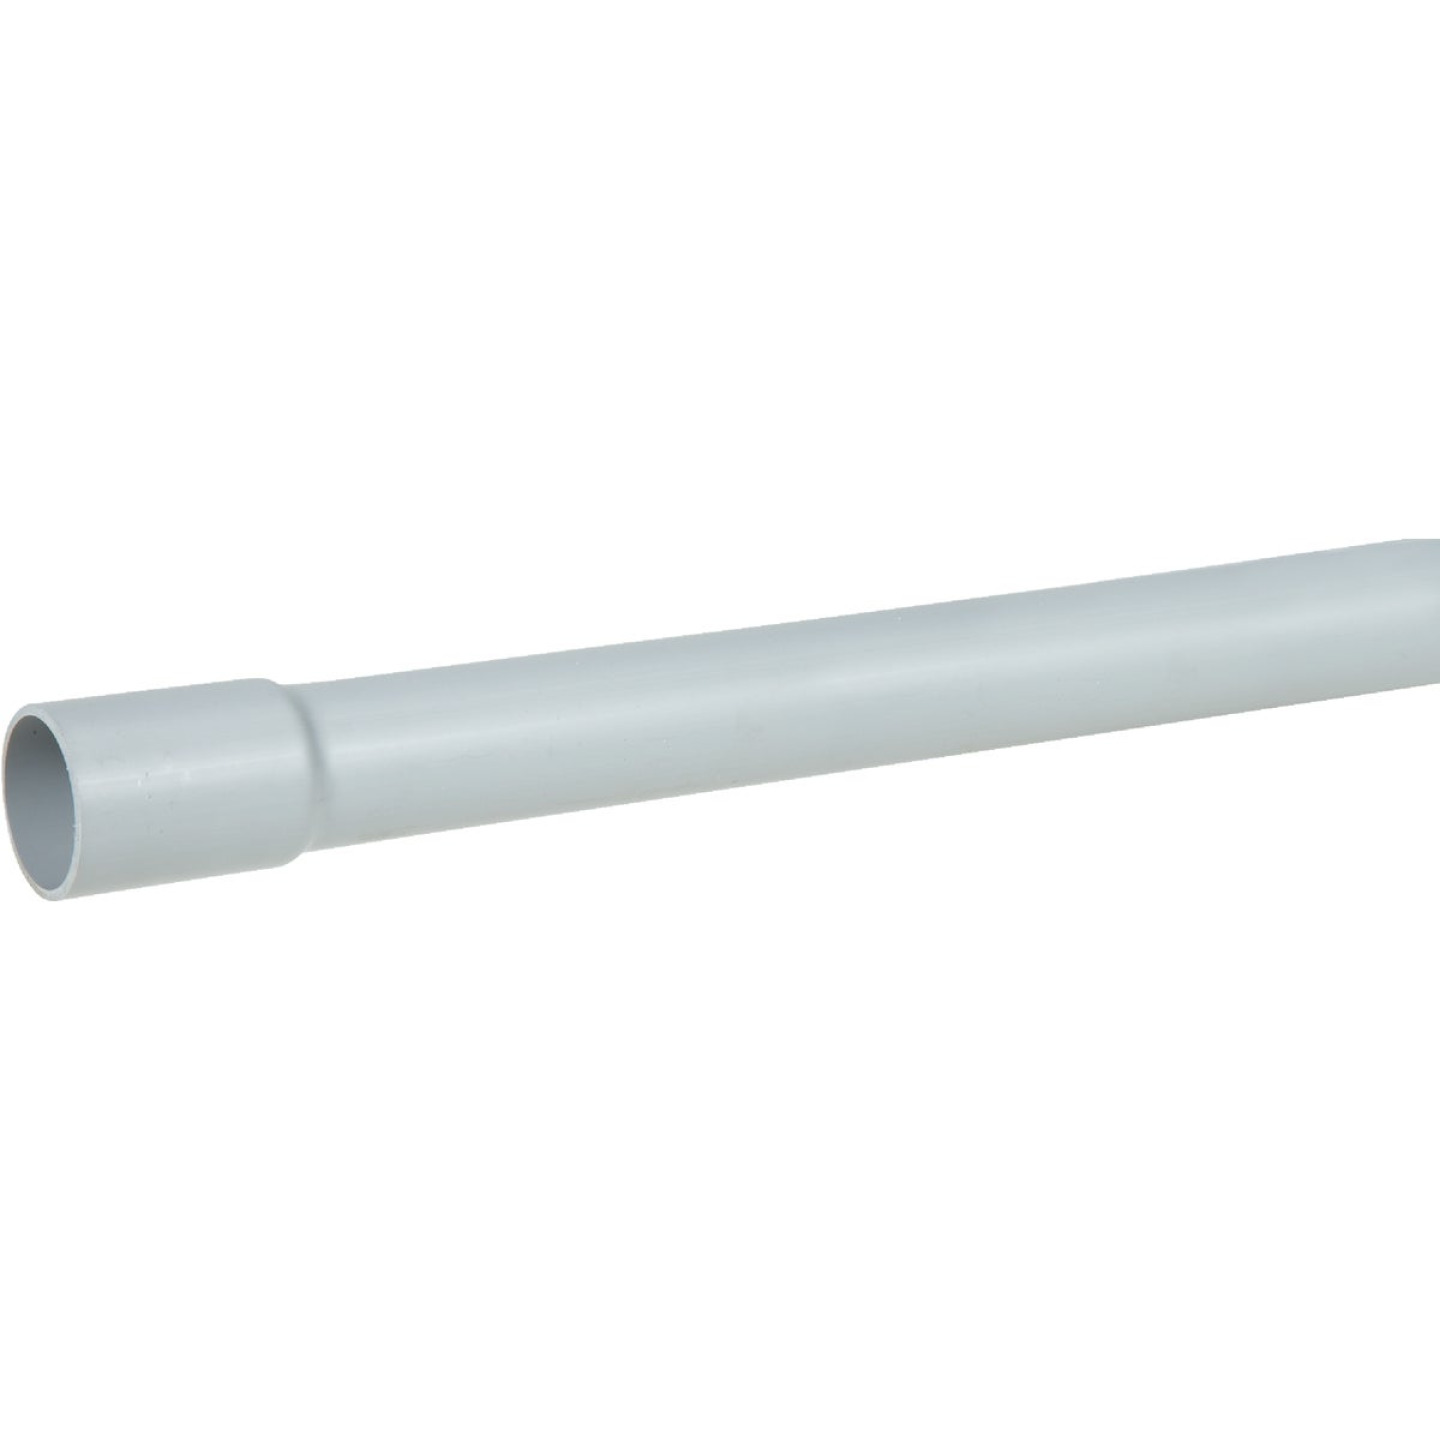 Allied 2 In. x 10 Ft. Schedule 80 PVC Conduit Image 1